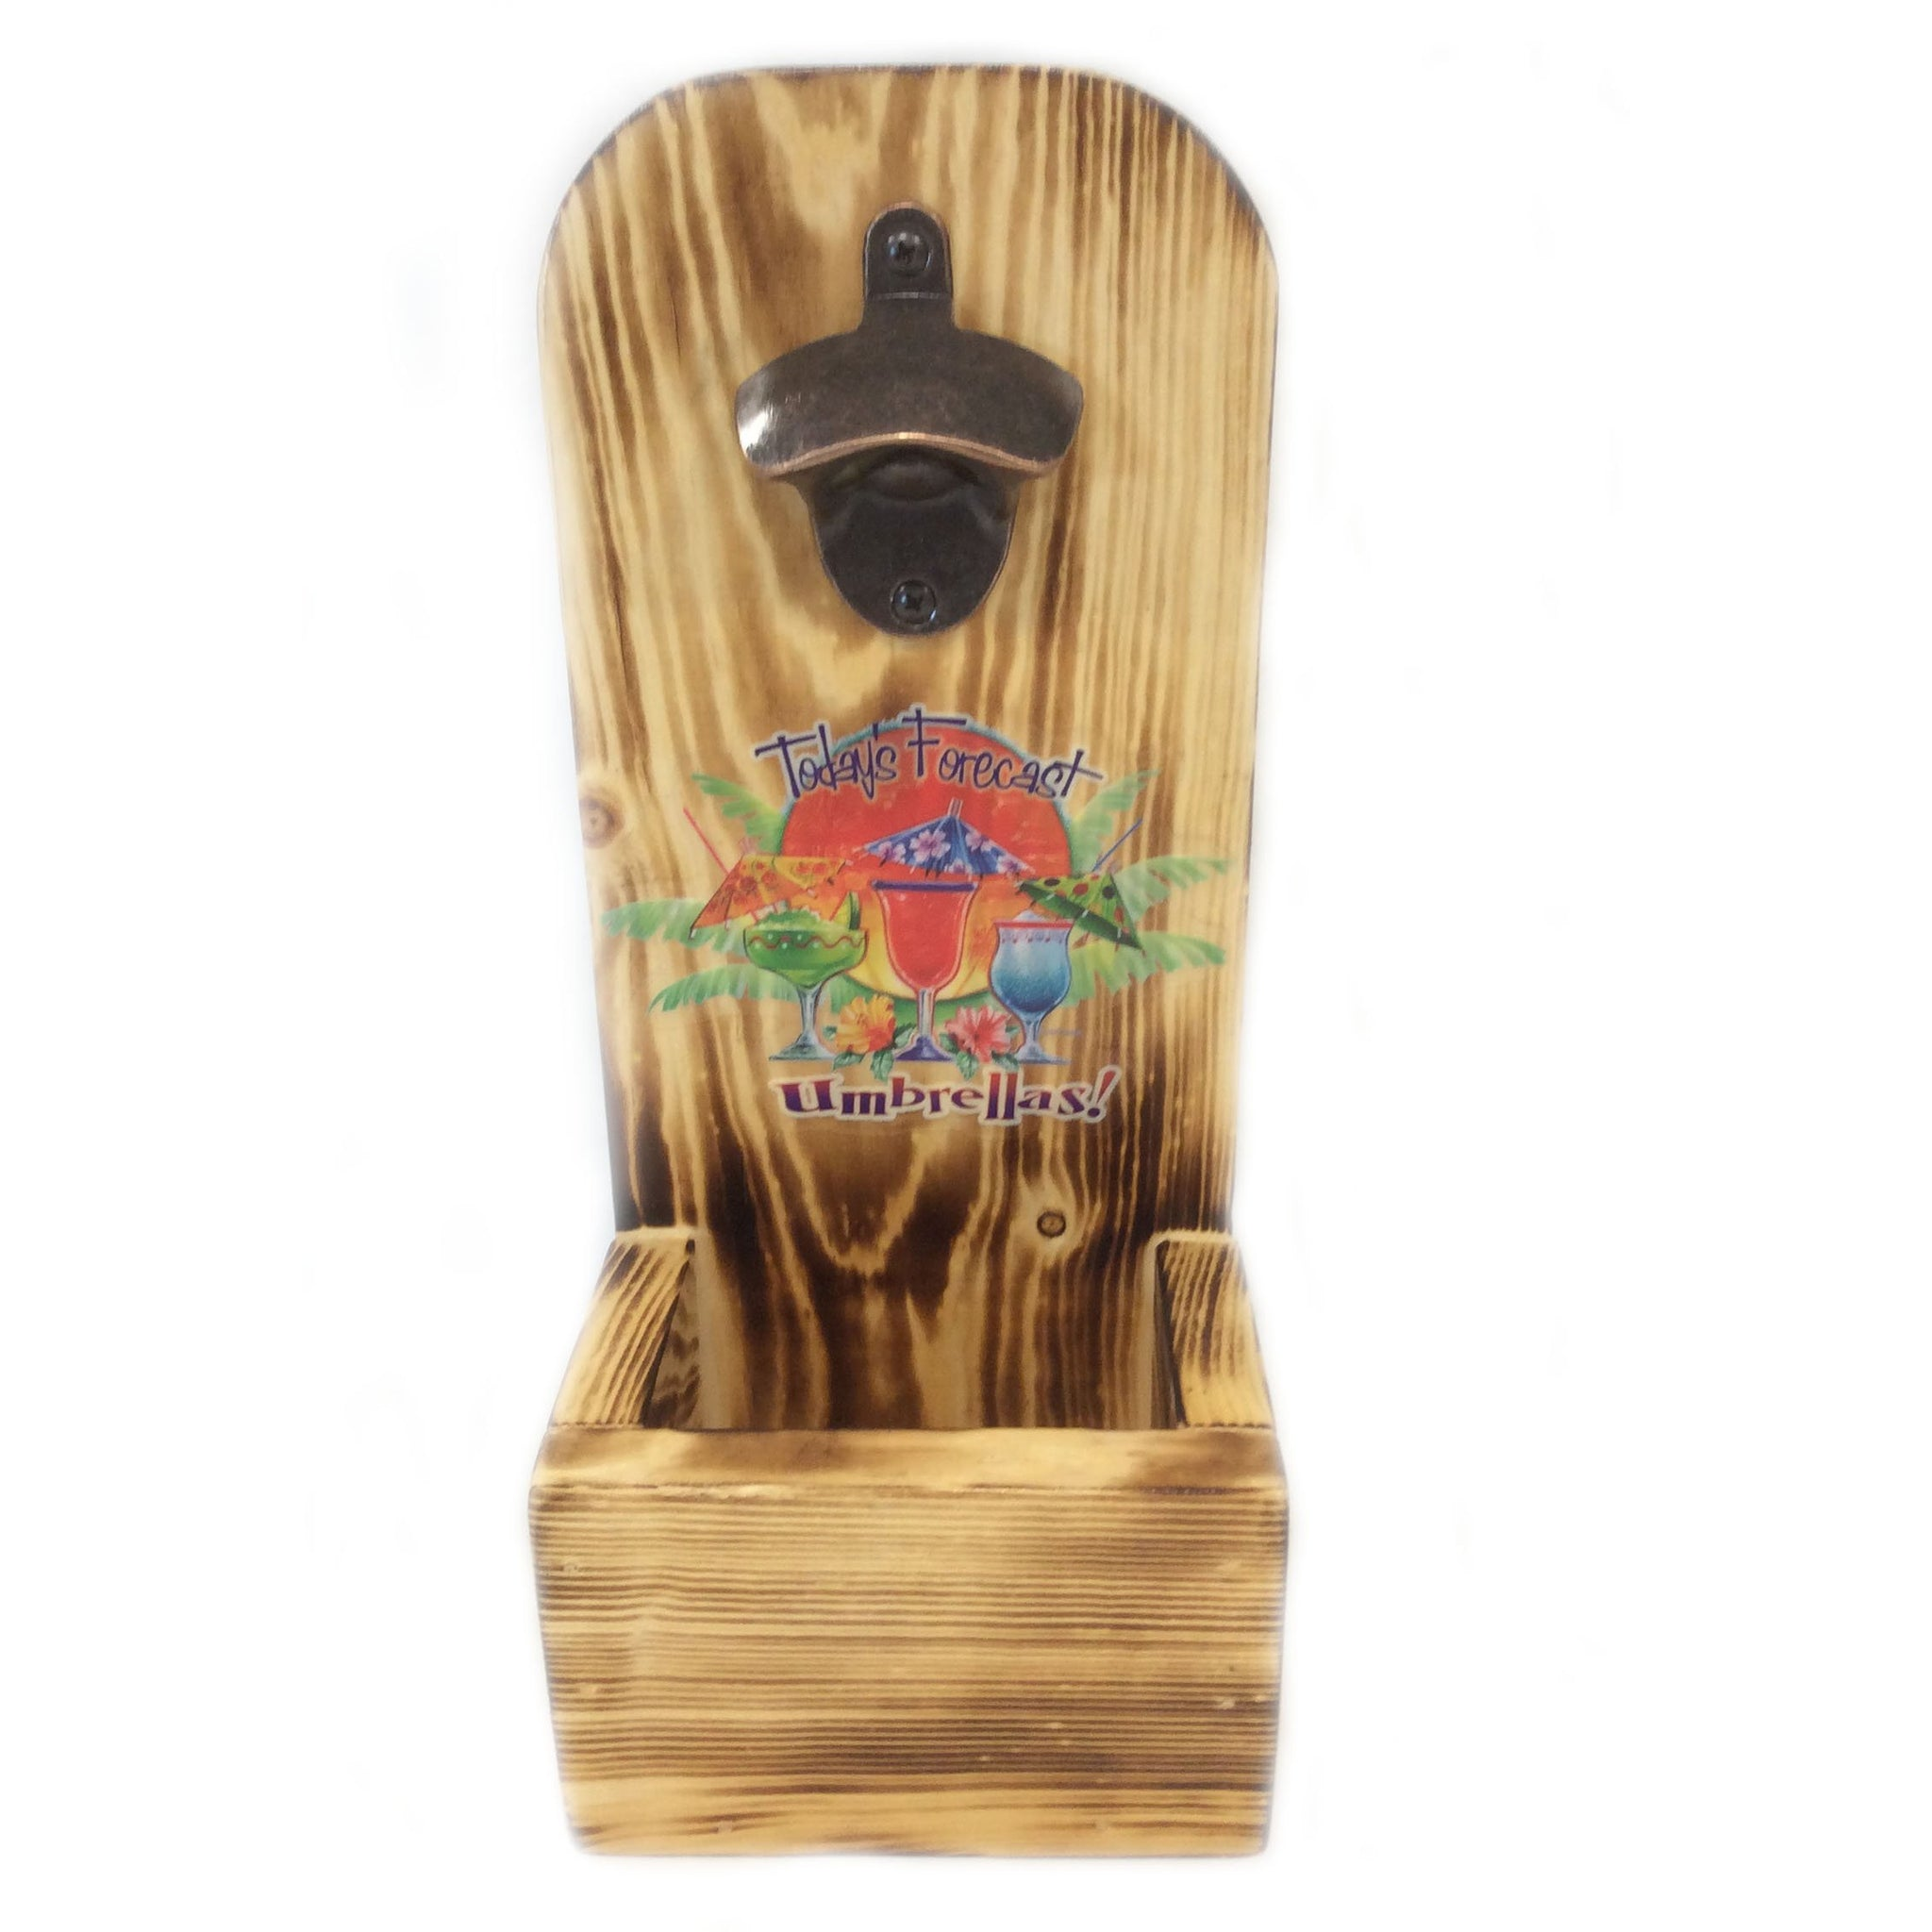 Wall Mounted Wooden Bottle Opener Tropical Forcast